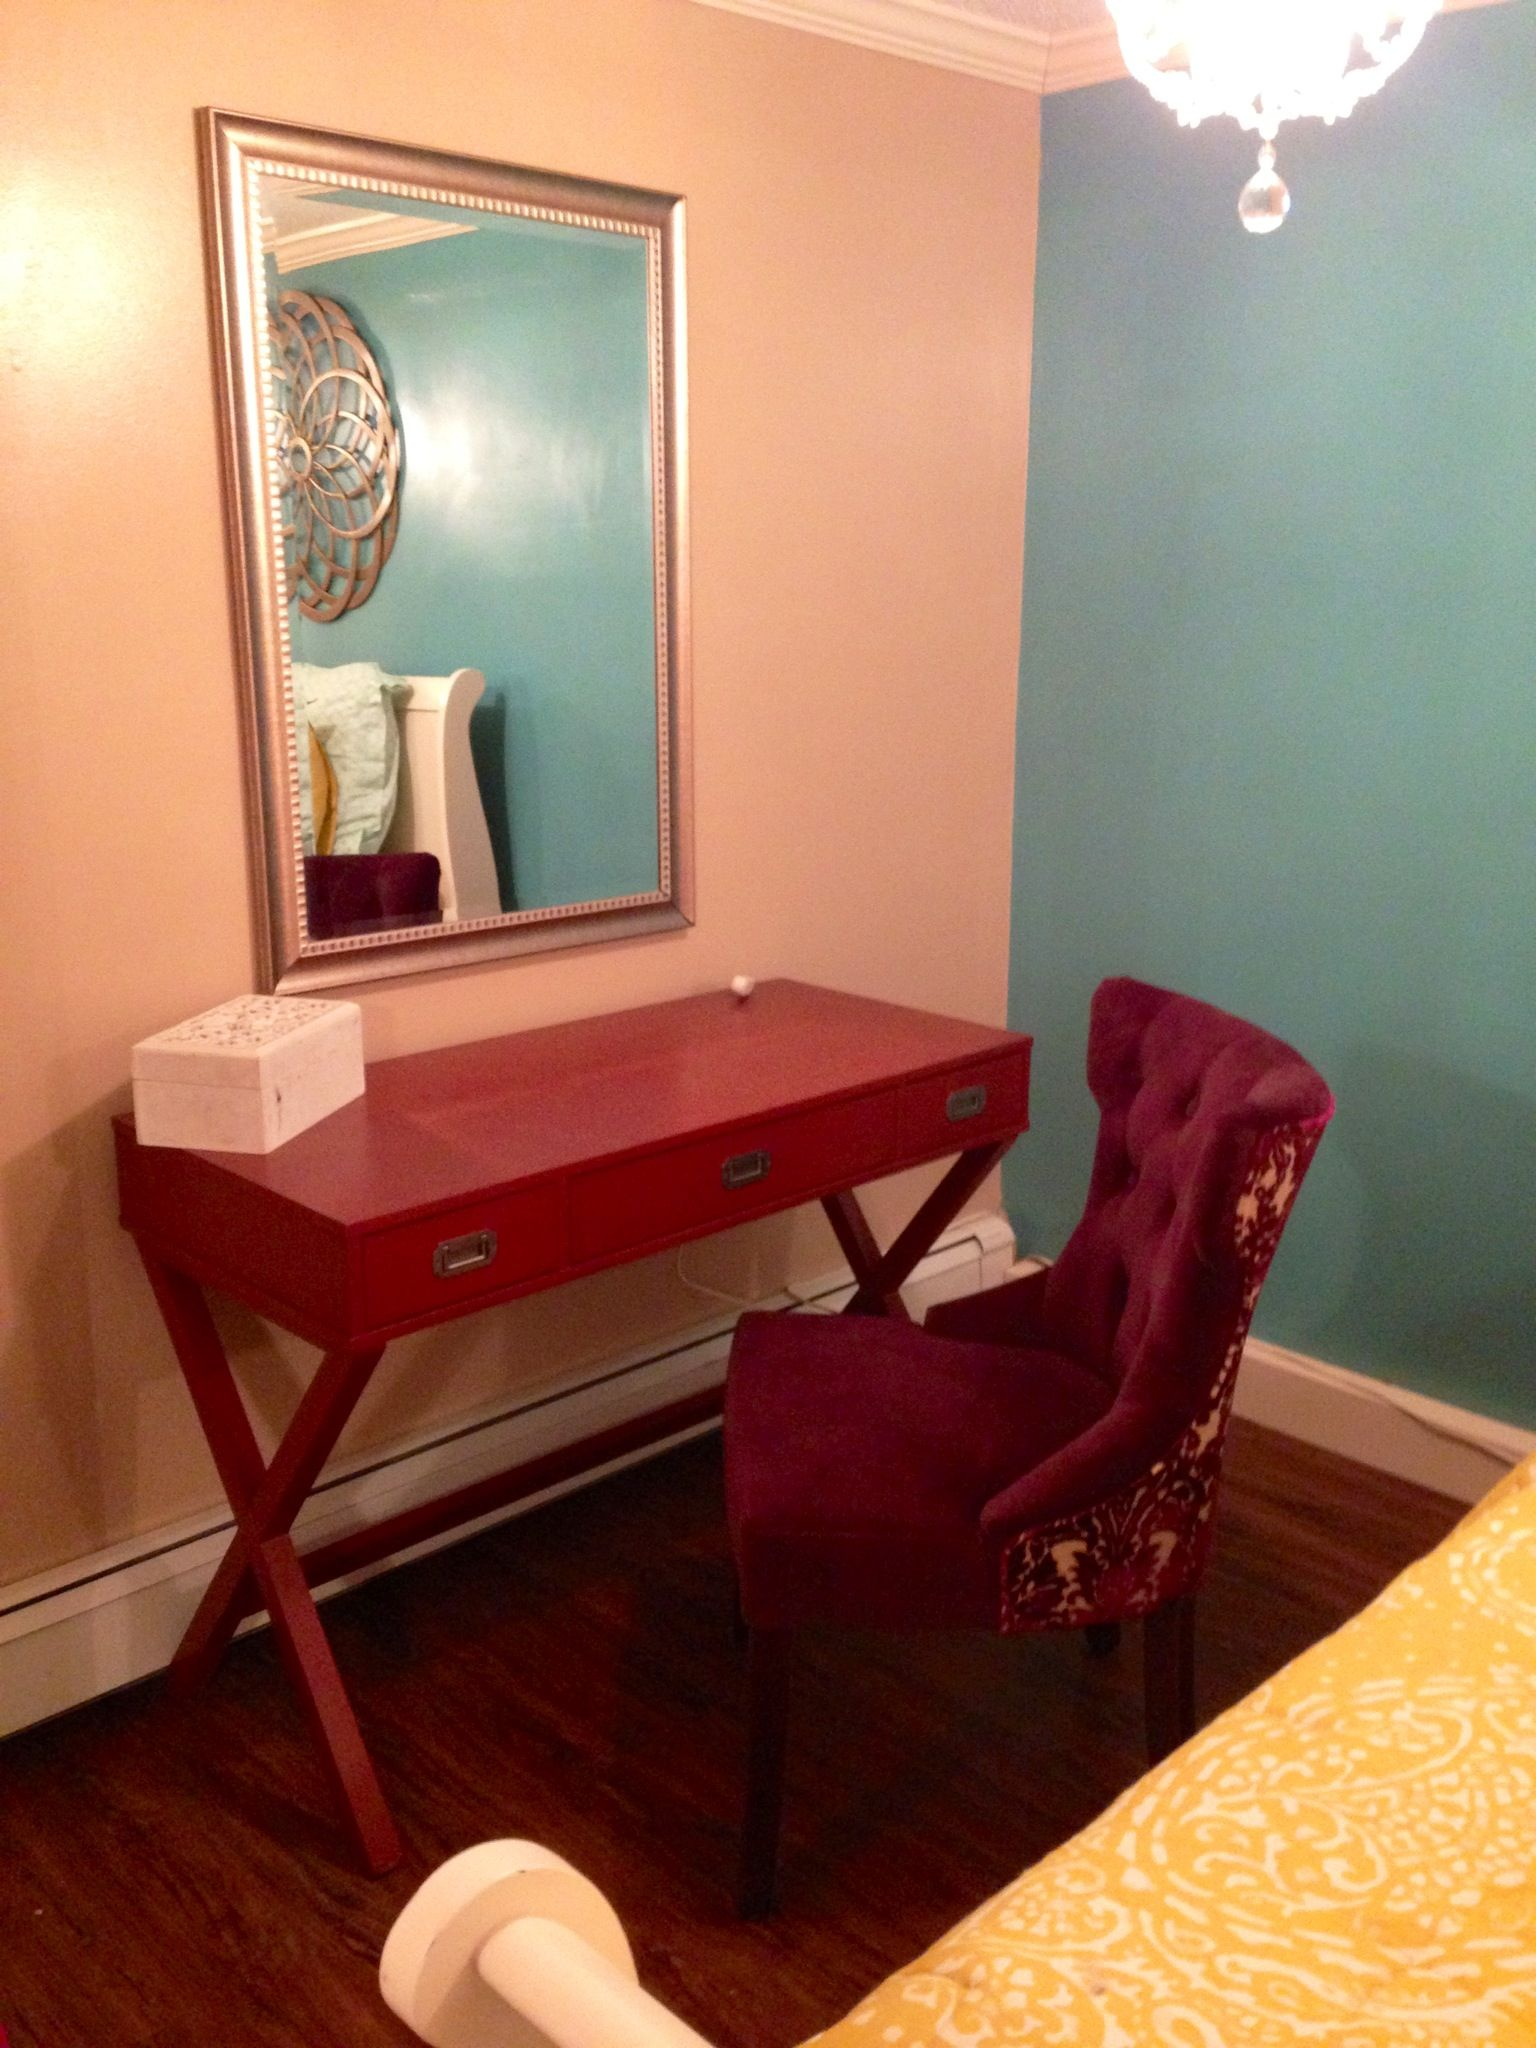 Target Bedroom Chairs Basement Bedroom Vanity Area Desk From Target Chair From